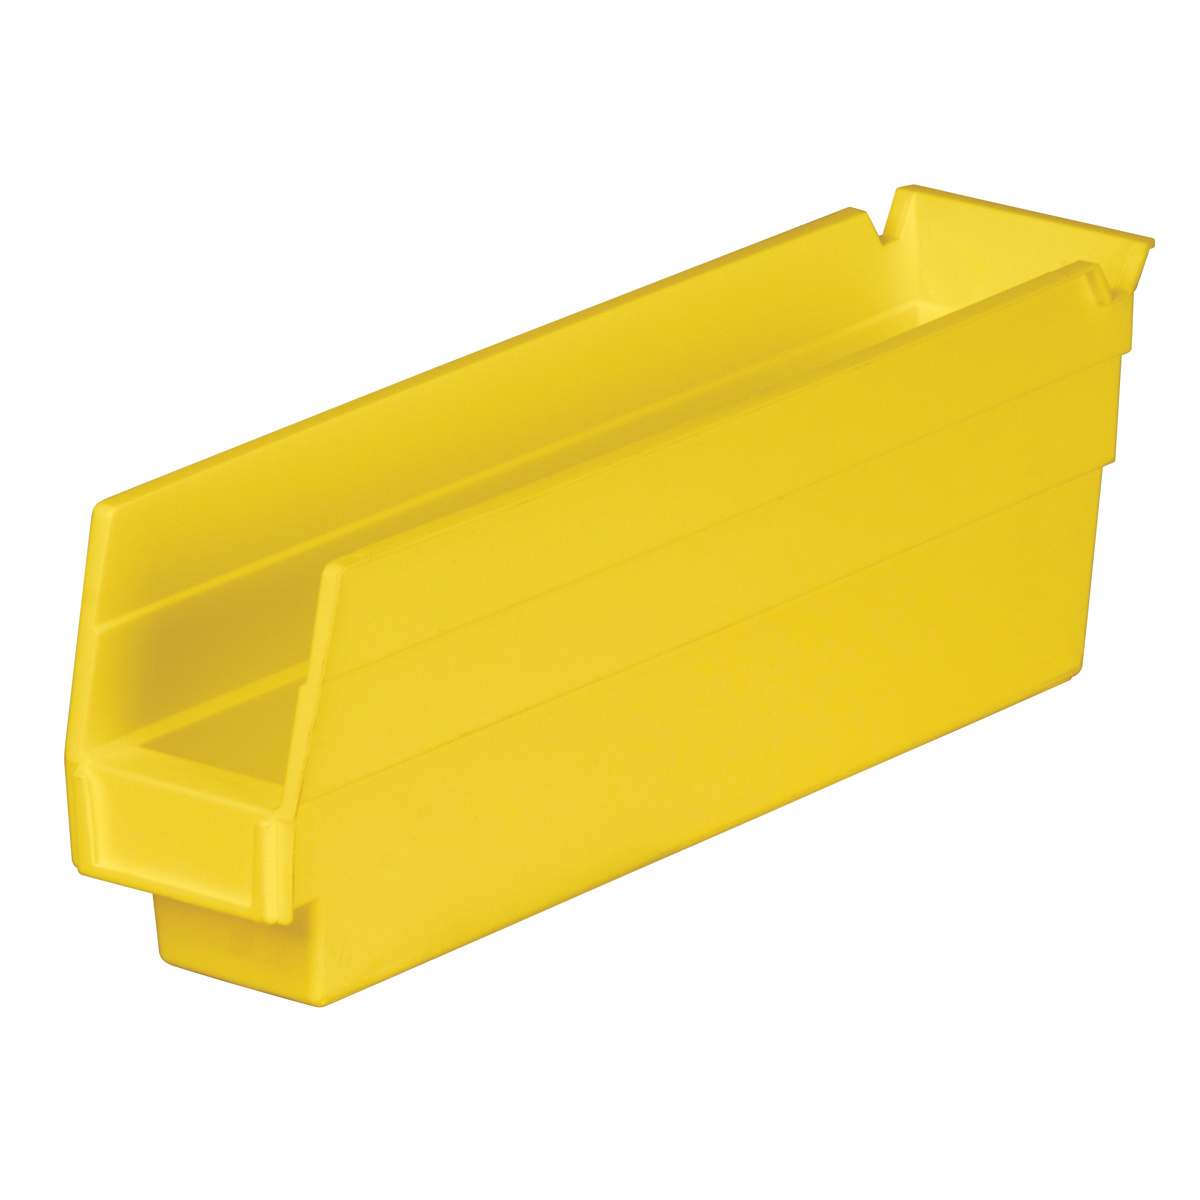 Shelf Bin 11-5/8 x 2-3/4 x 4, Yellow (30110YELLO).  This item sold in carton quantities of 24.